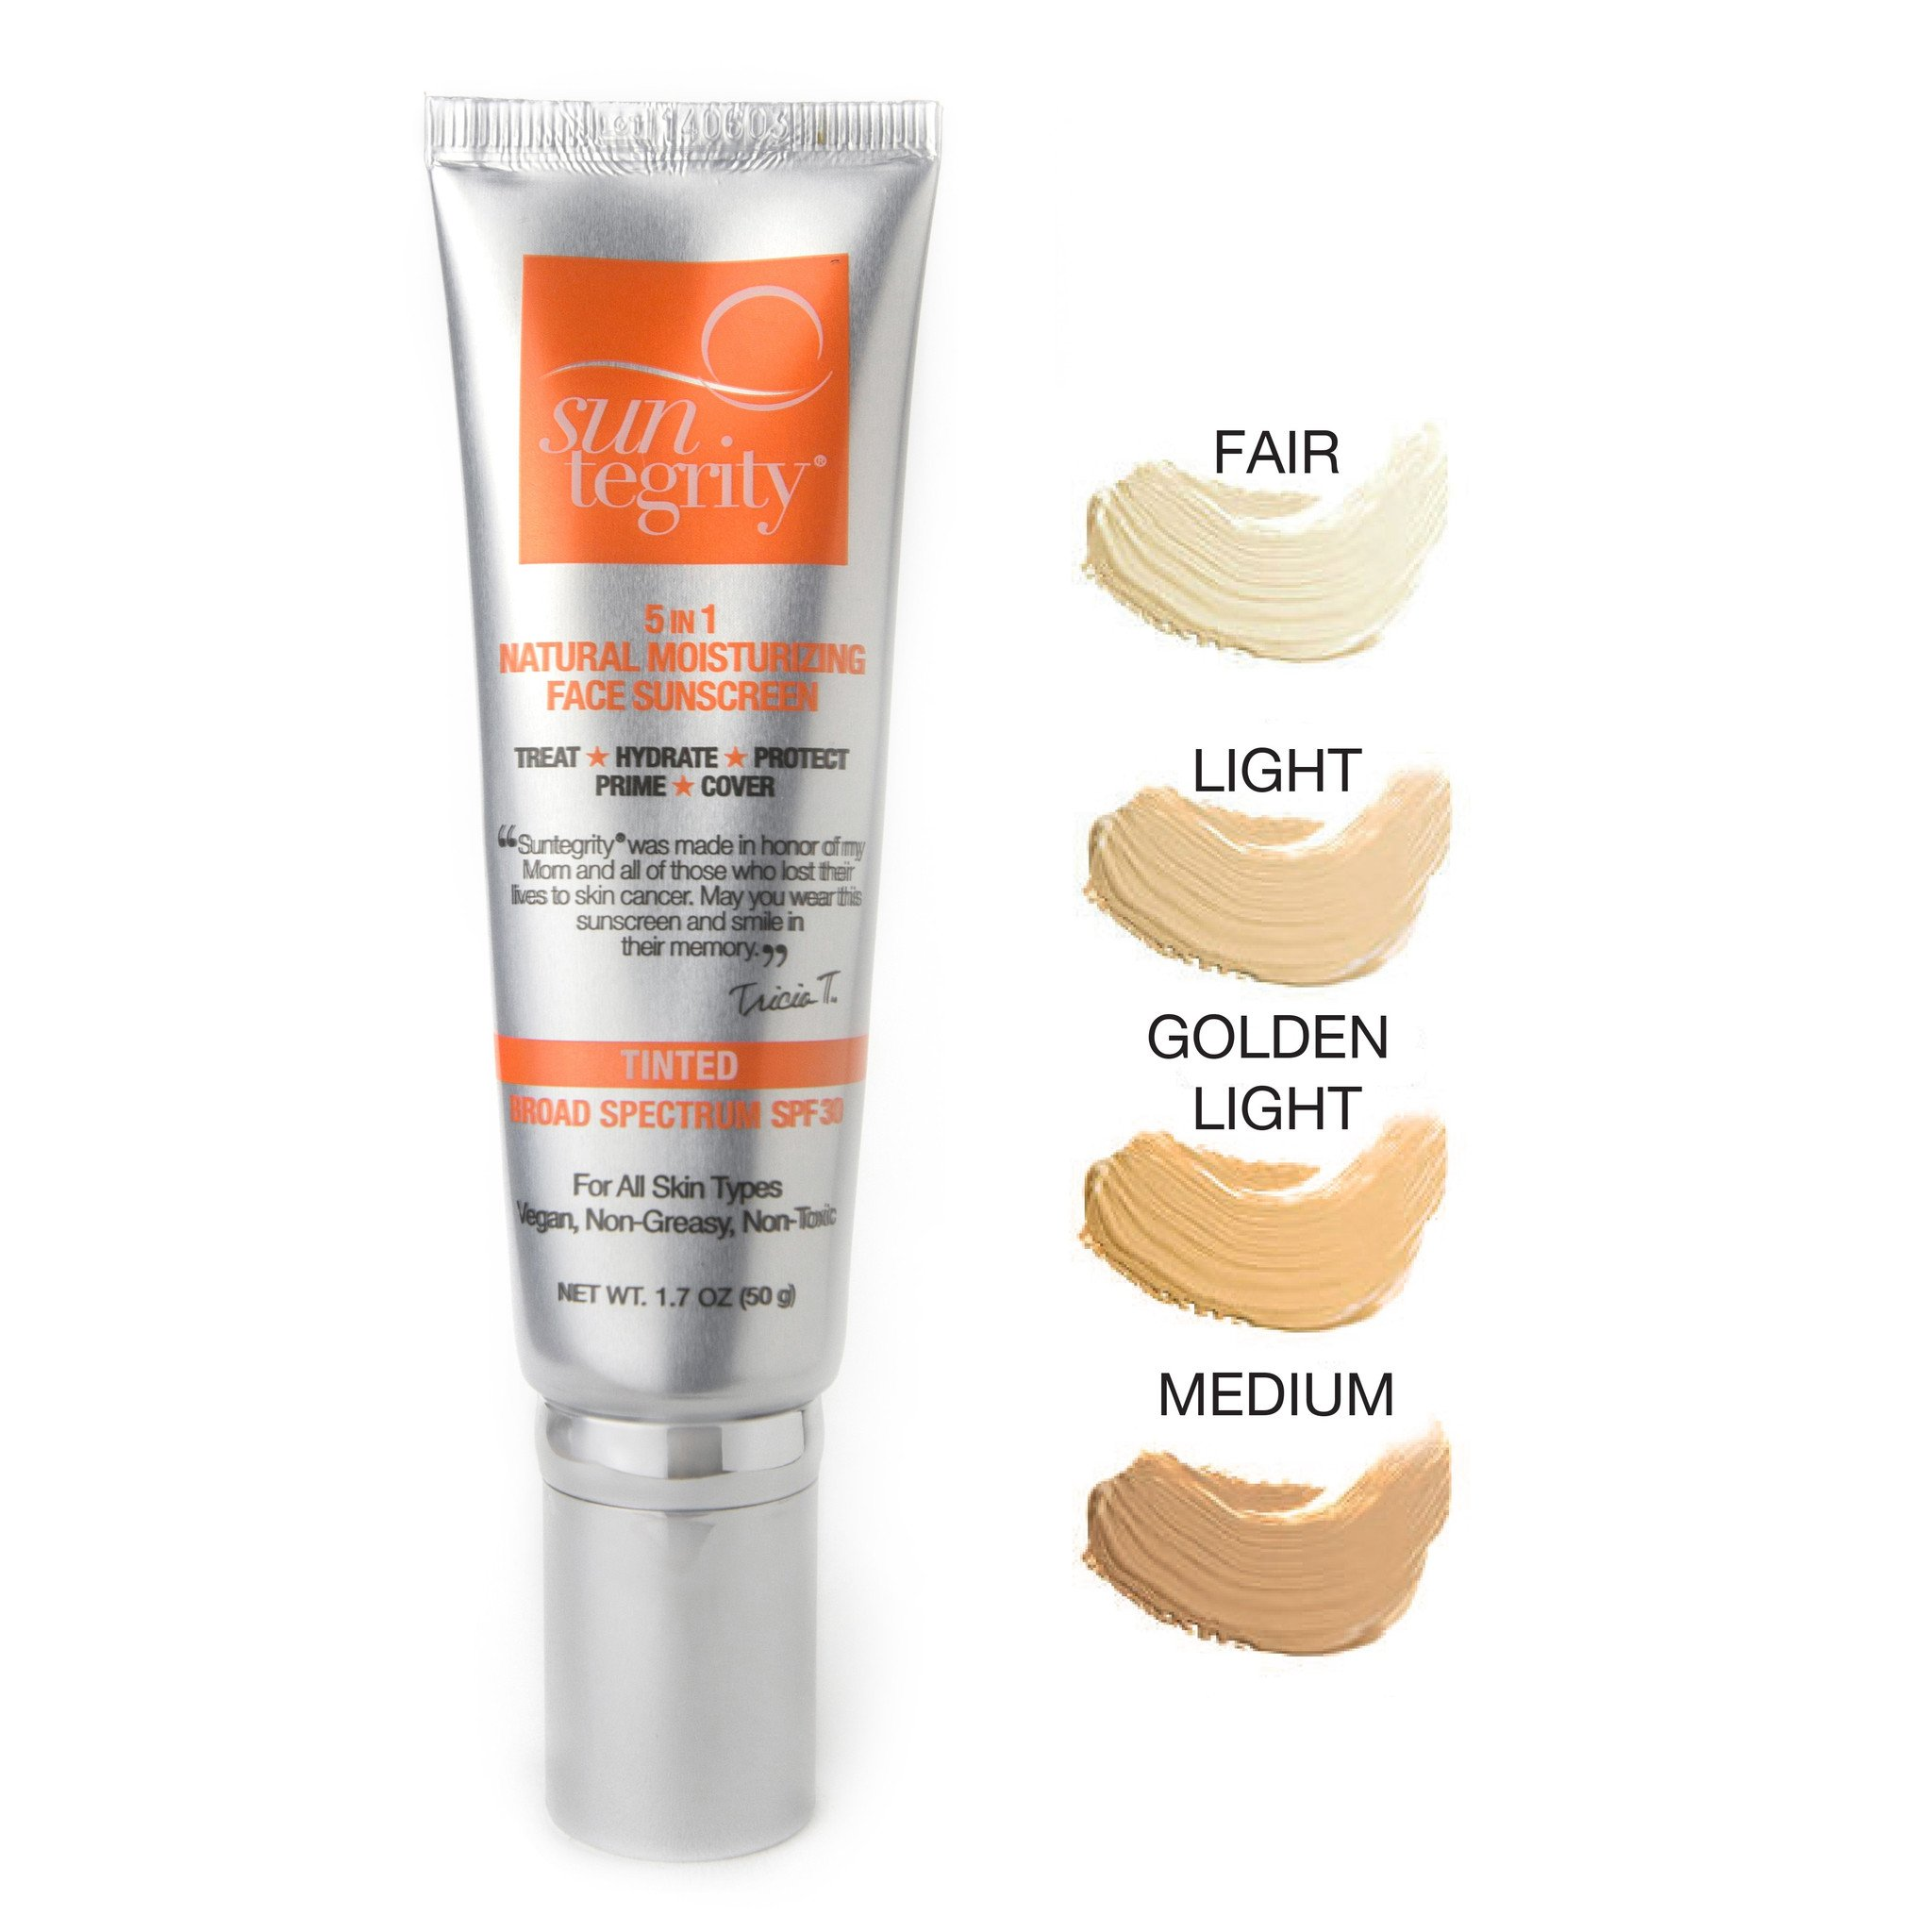 SUNTEGRITY 5-In-1 Tinted Moisturizing Face Sunscreen // $45 - Good For: All skin types